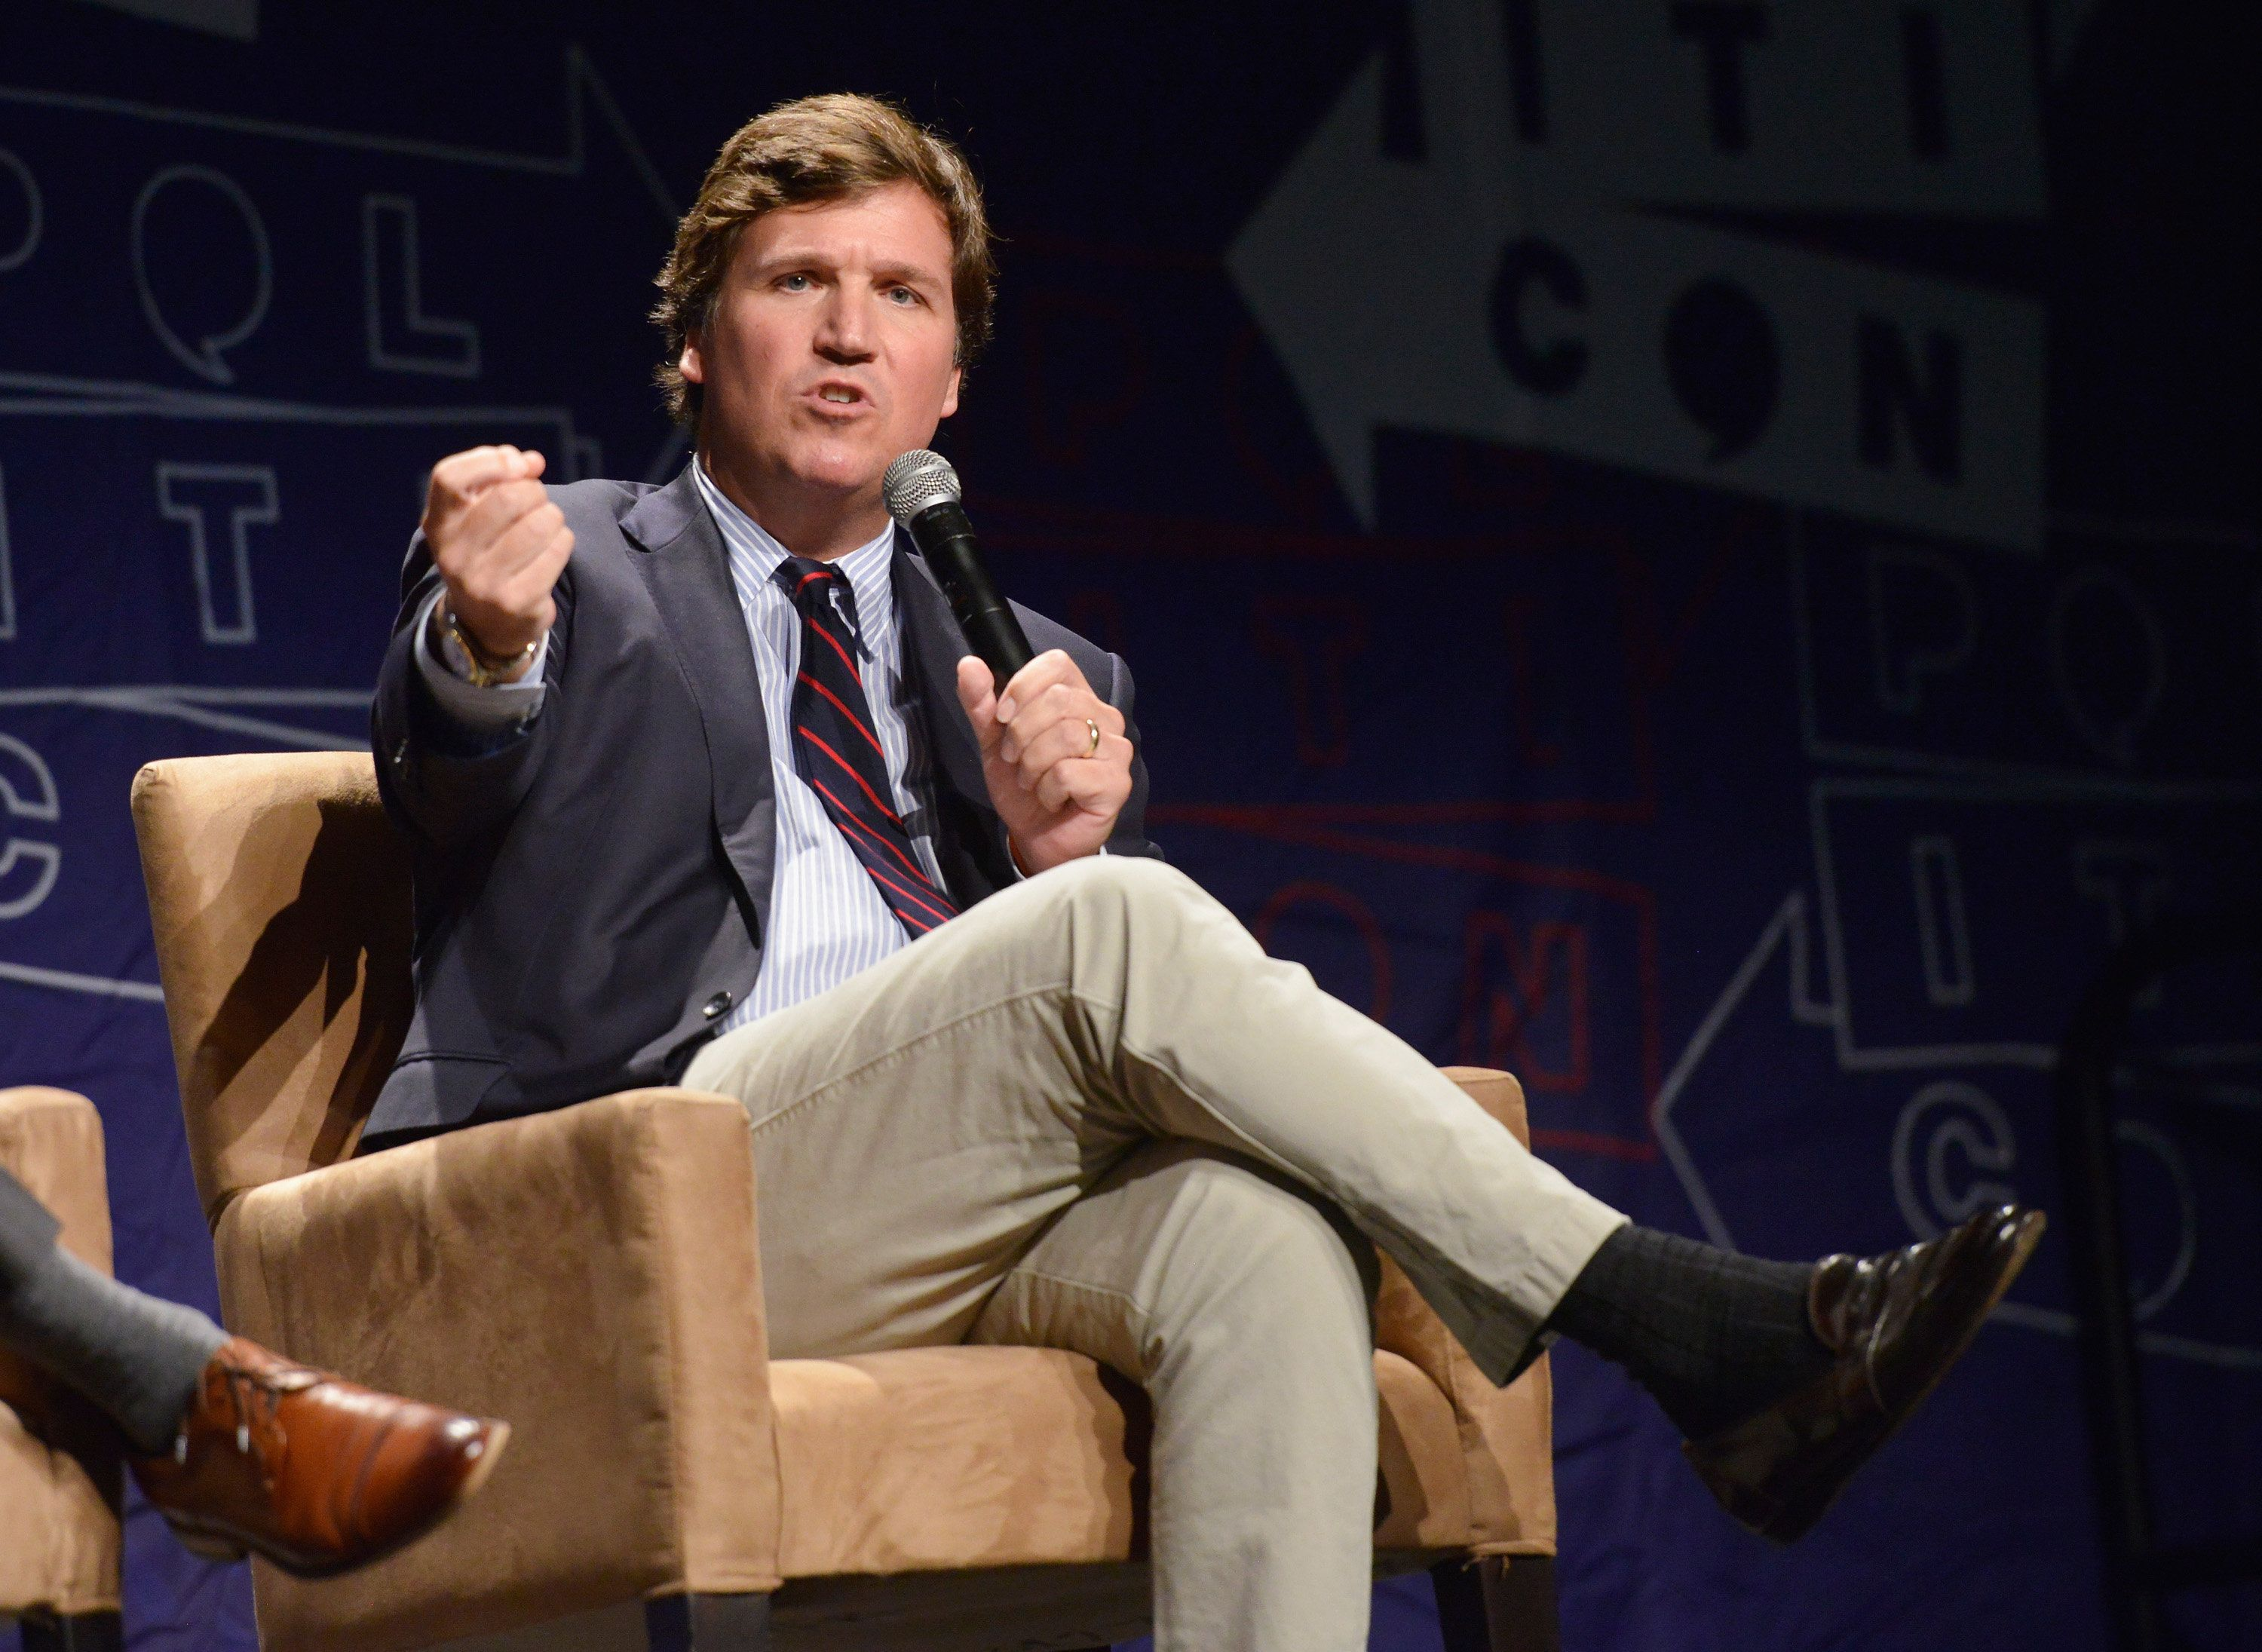 LOS ANGELES, CA - OCTOBER 21:  Political commentator Tucker Carlson speaks during Politicon 2018 at Los Angeles Convention Center on October 21, 2018 in Los Angeles, California.  (Photo by Chelsea Guglielmino/Getty Images)